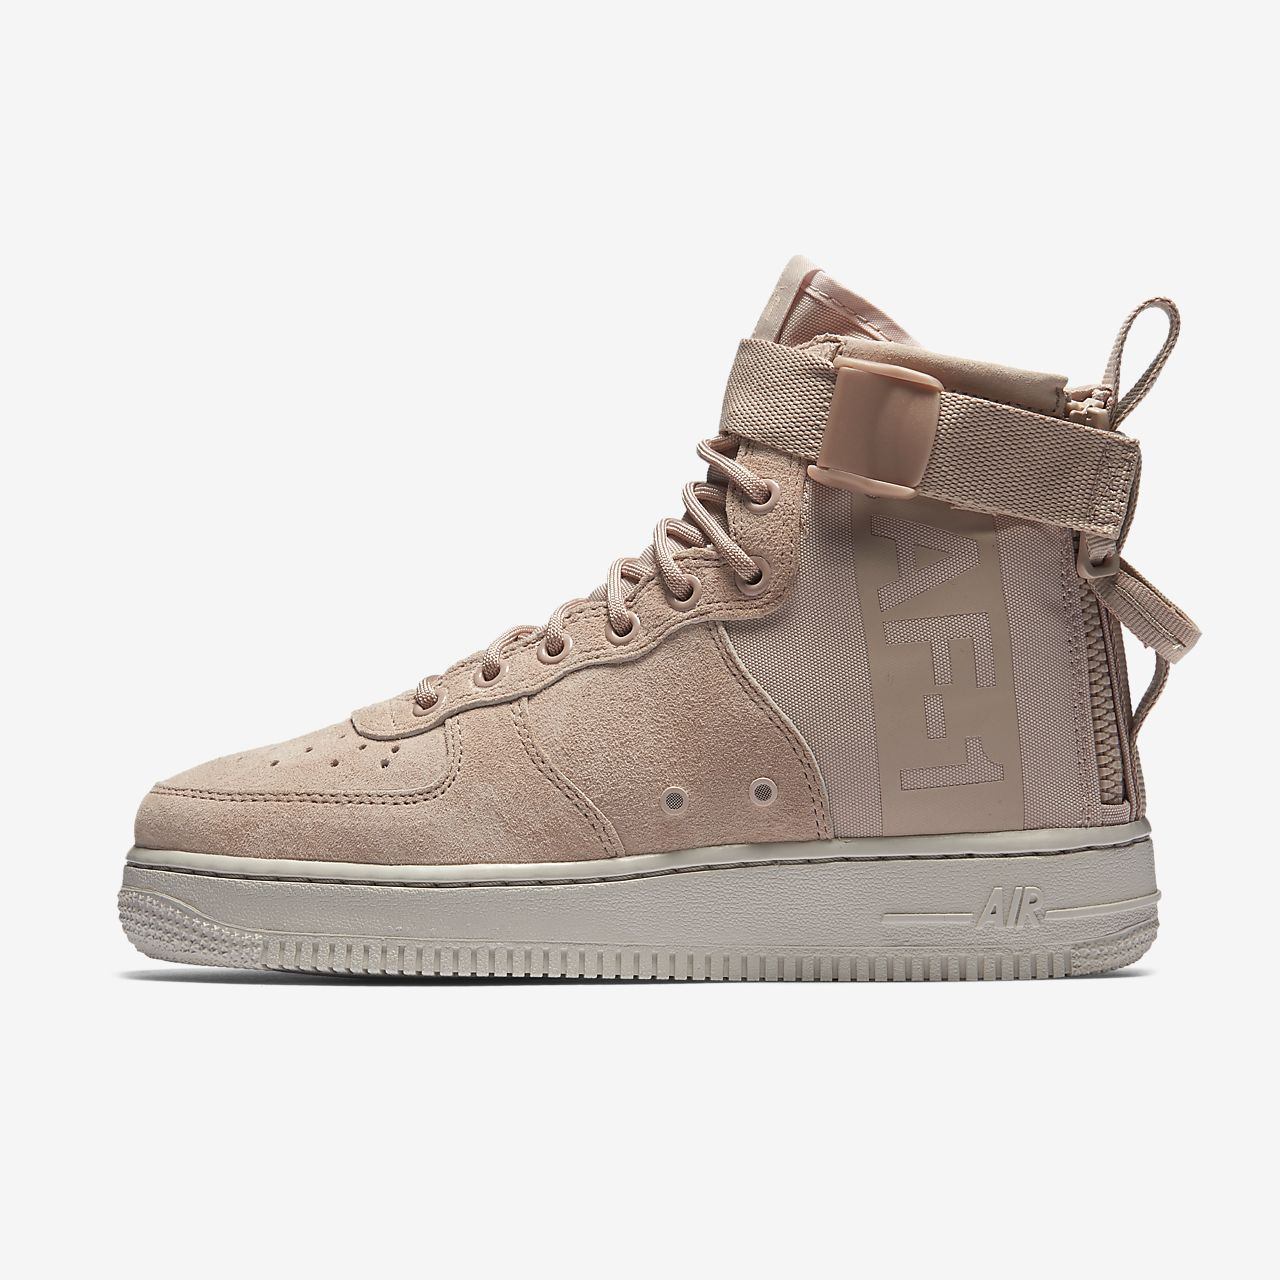 ... Botte Nike SF Air Force 1 Mid pour Femme